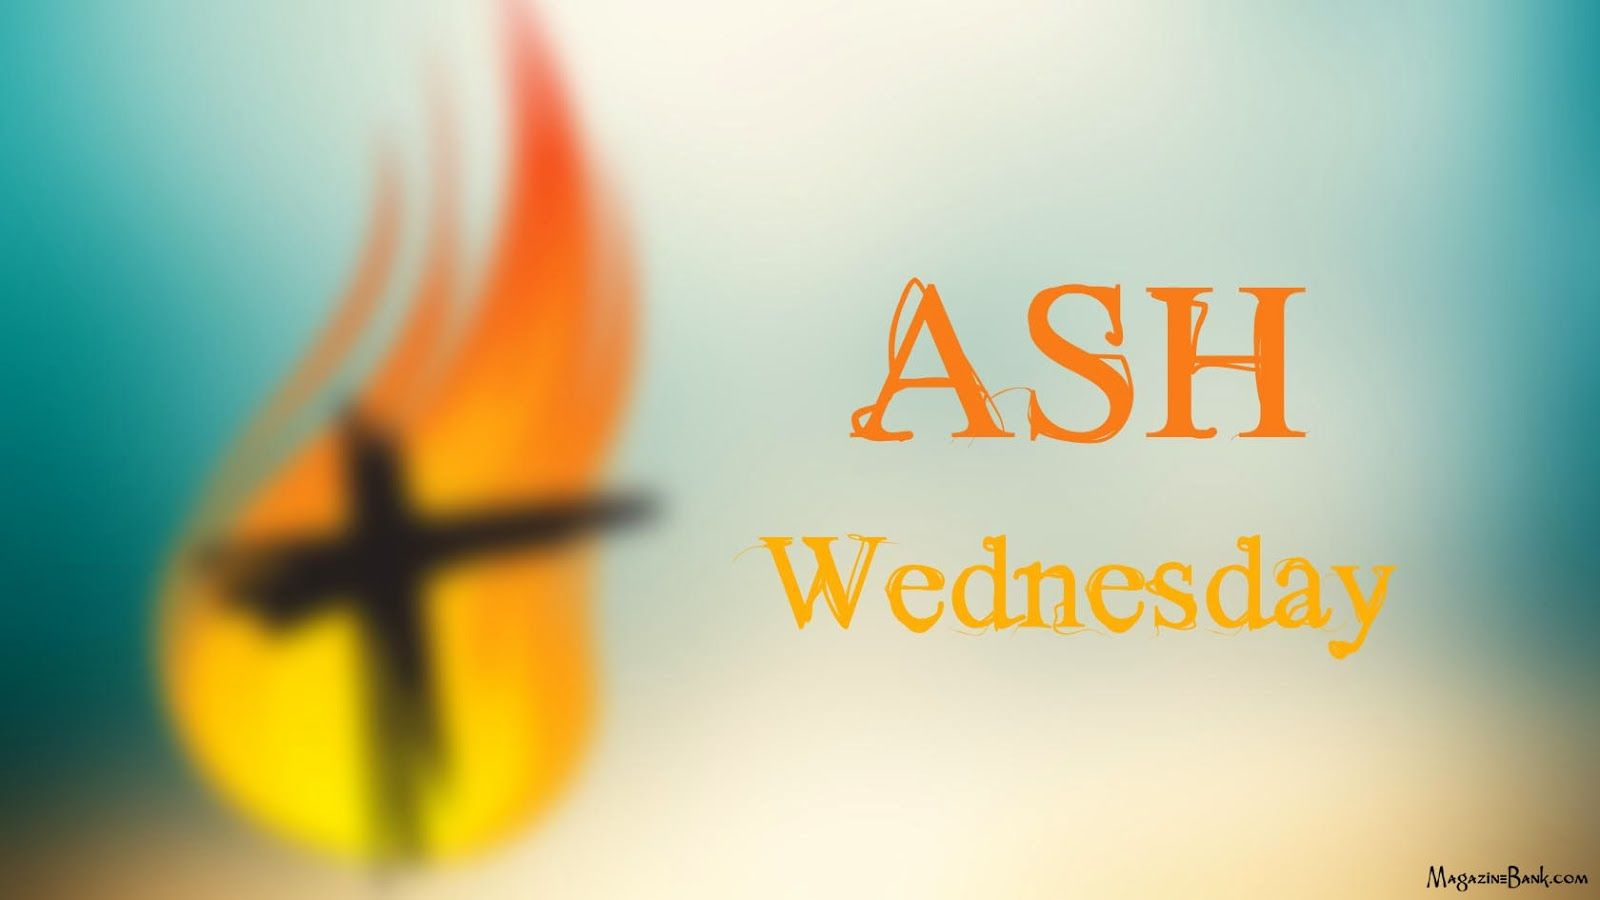 Ash wednesday quotes and sayings wishes greeting cards wednesday ash wednesday quotes and sayings wishes greeting cards m4hsunfo